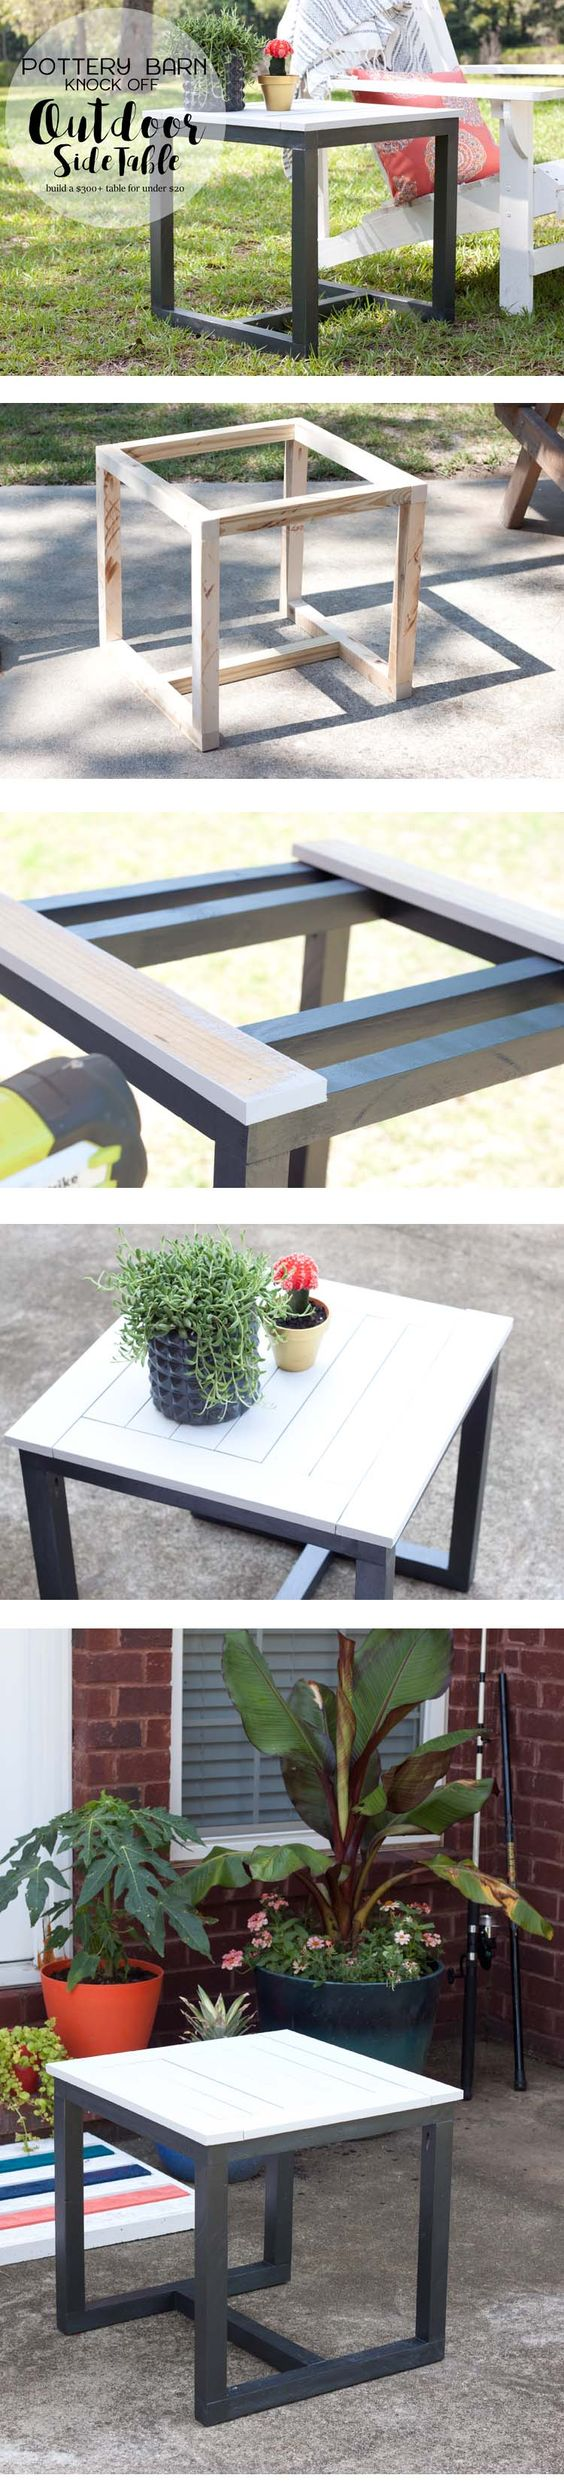 1000+ ideas about Diy Outdoor Furniture on Pinterest ...